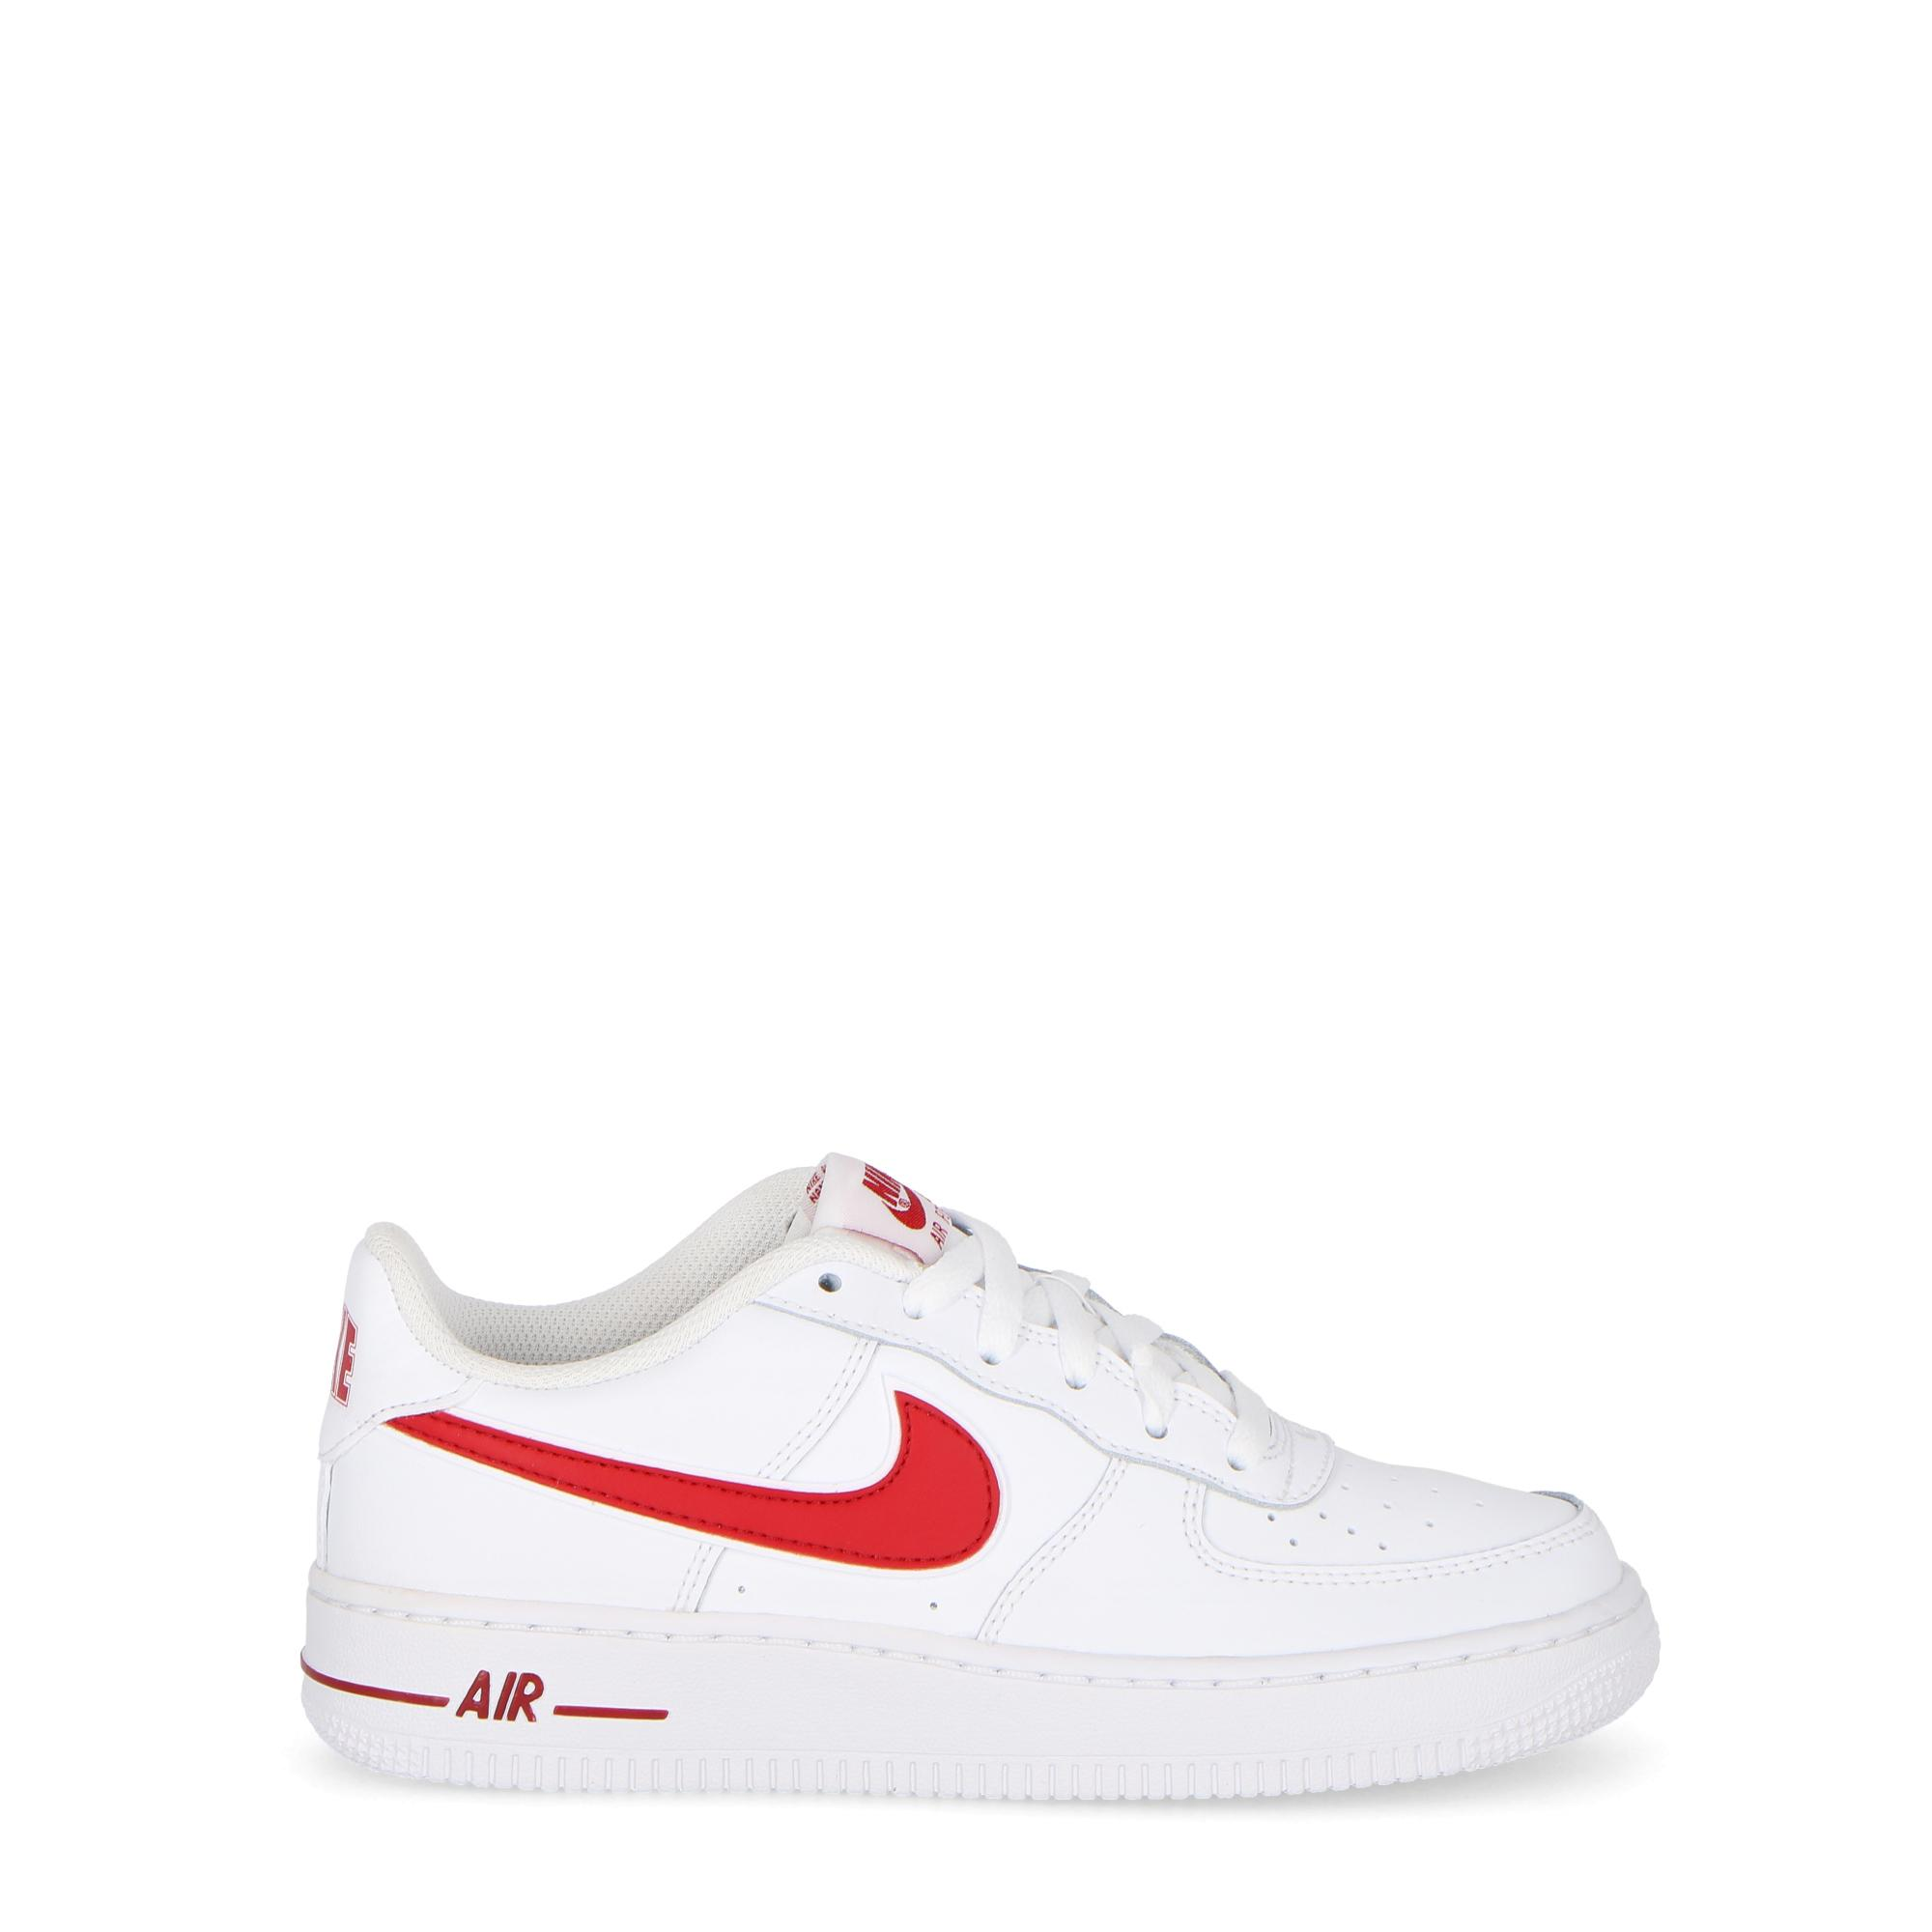 fb8092d41b Nike Air Force 1 3(gs) - Kids White Gym Red | Treesse